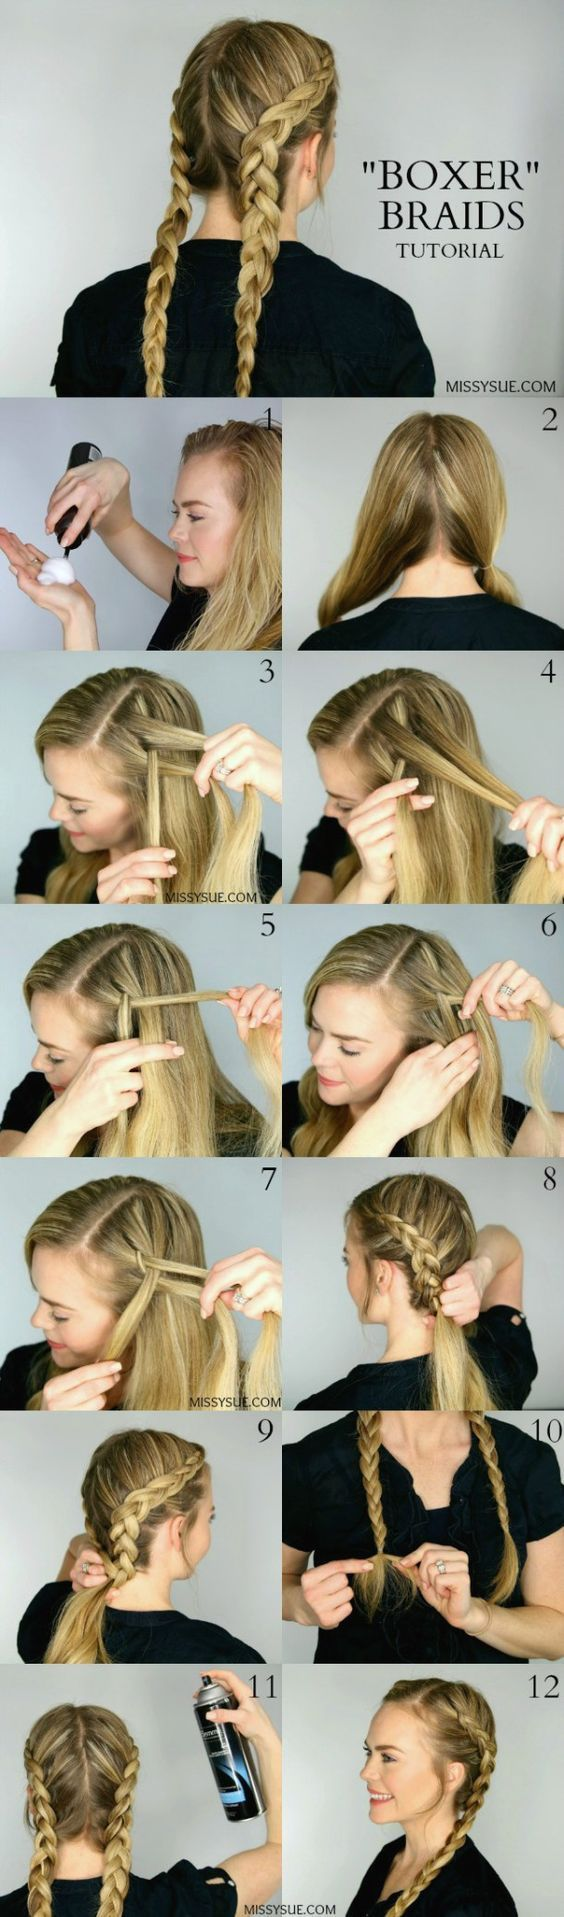 Braids are one of the best hairstyles you can choose for everyday